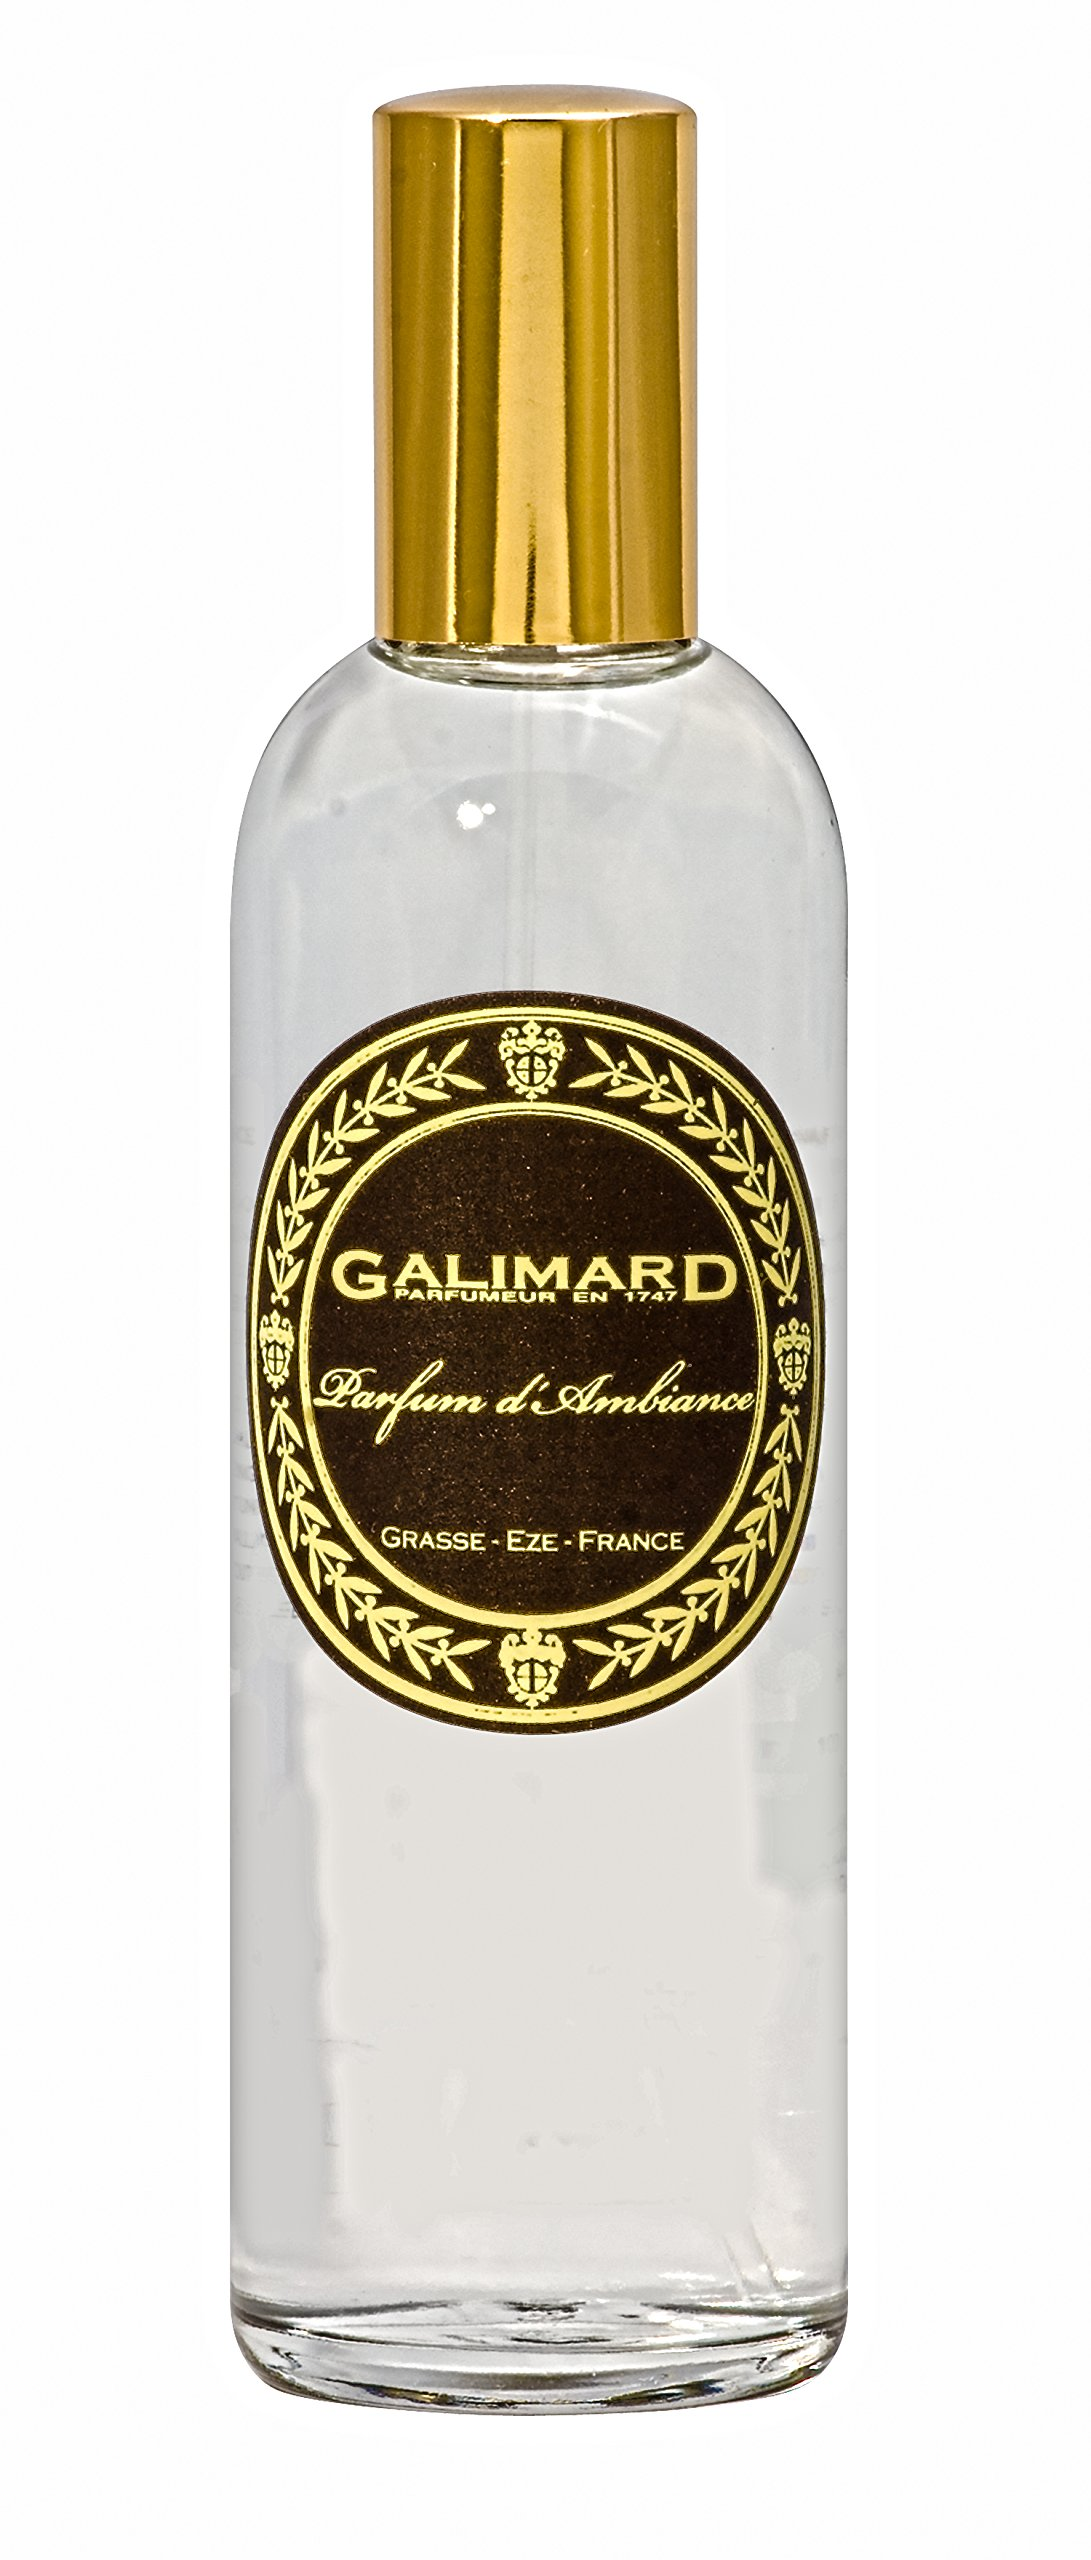 GALIMARD Fragrant Room Spray - Lavender 100ml / 3.3 fl oz Glass Atomizer, Made in France, Perfumers since 1747 by GALIMARD (Image #1)